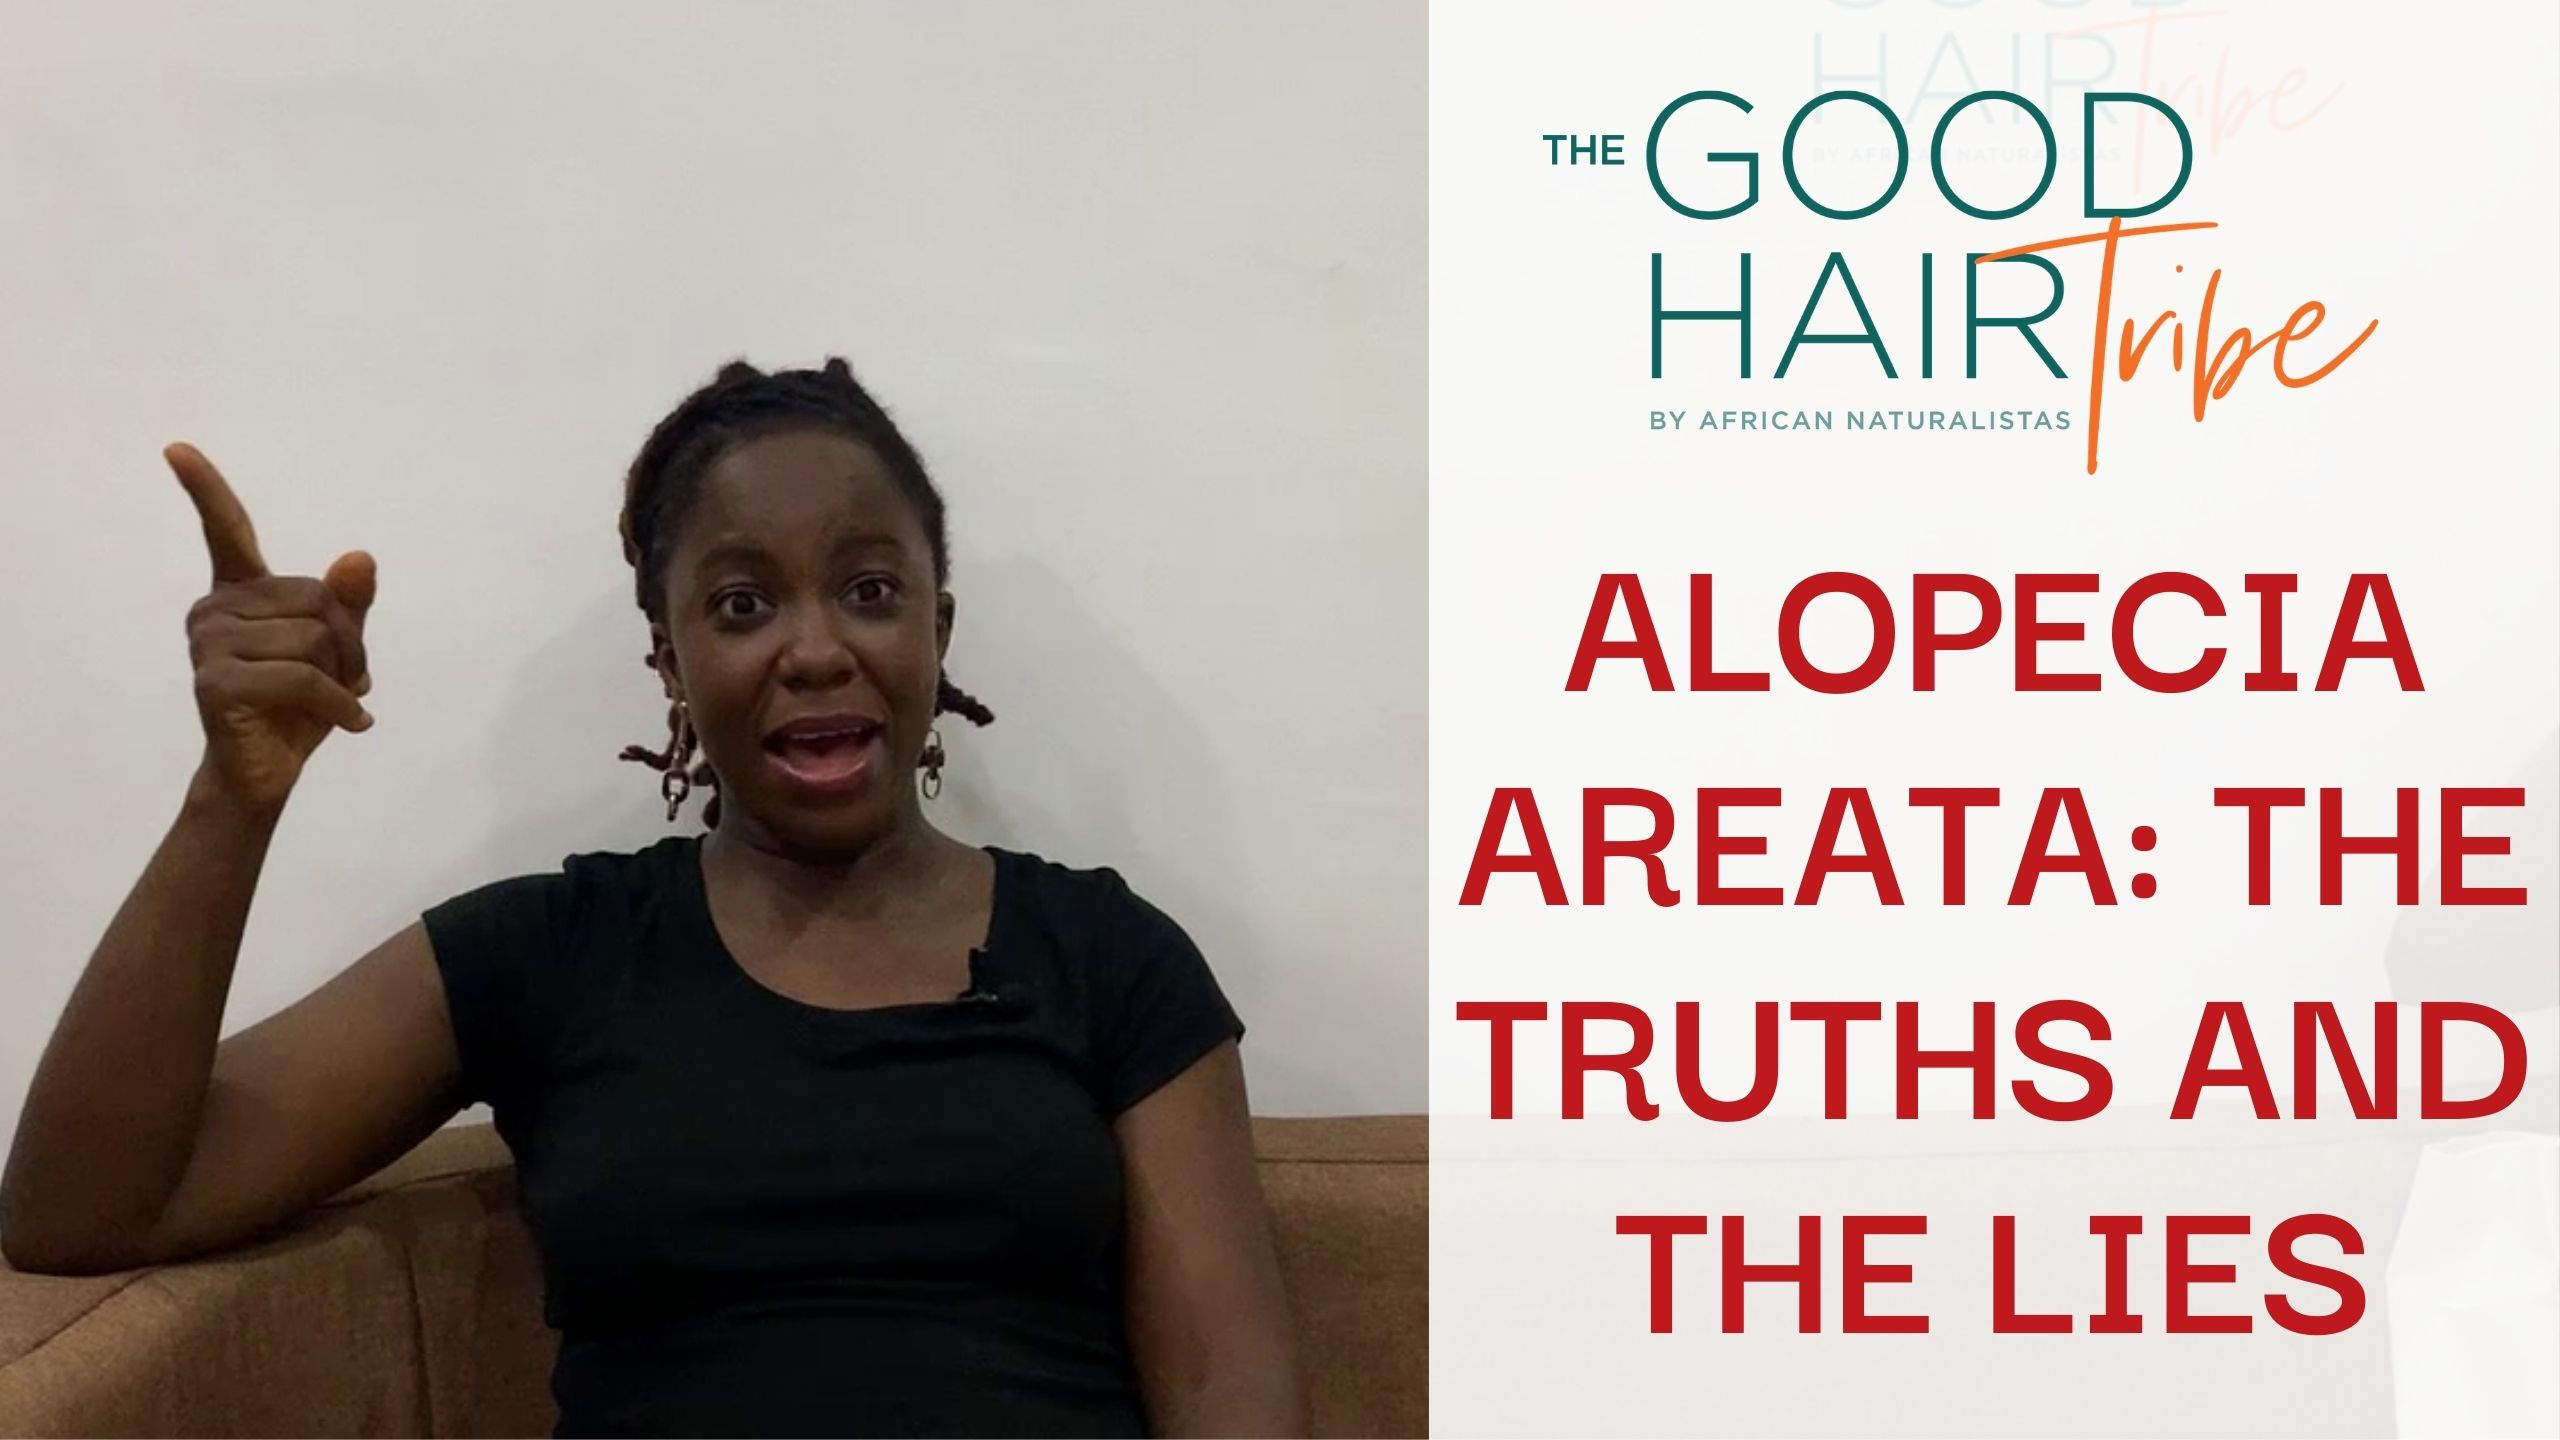 Alopecia Areata: The Truths and the Lies